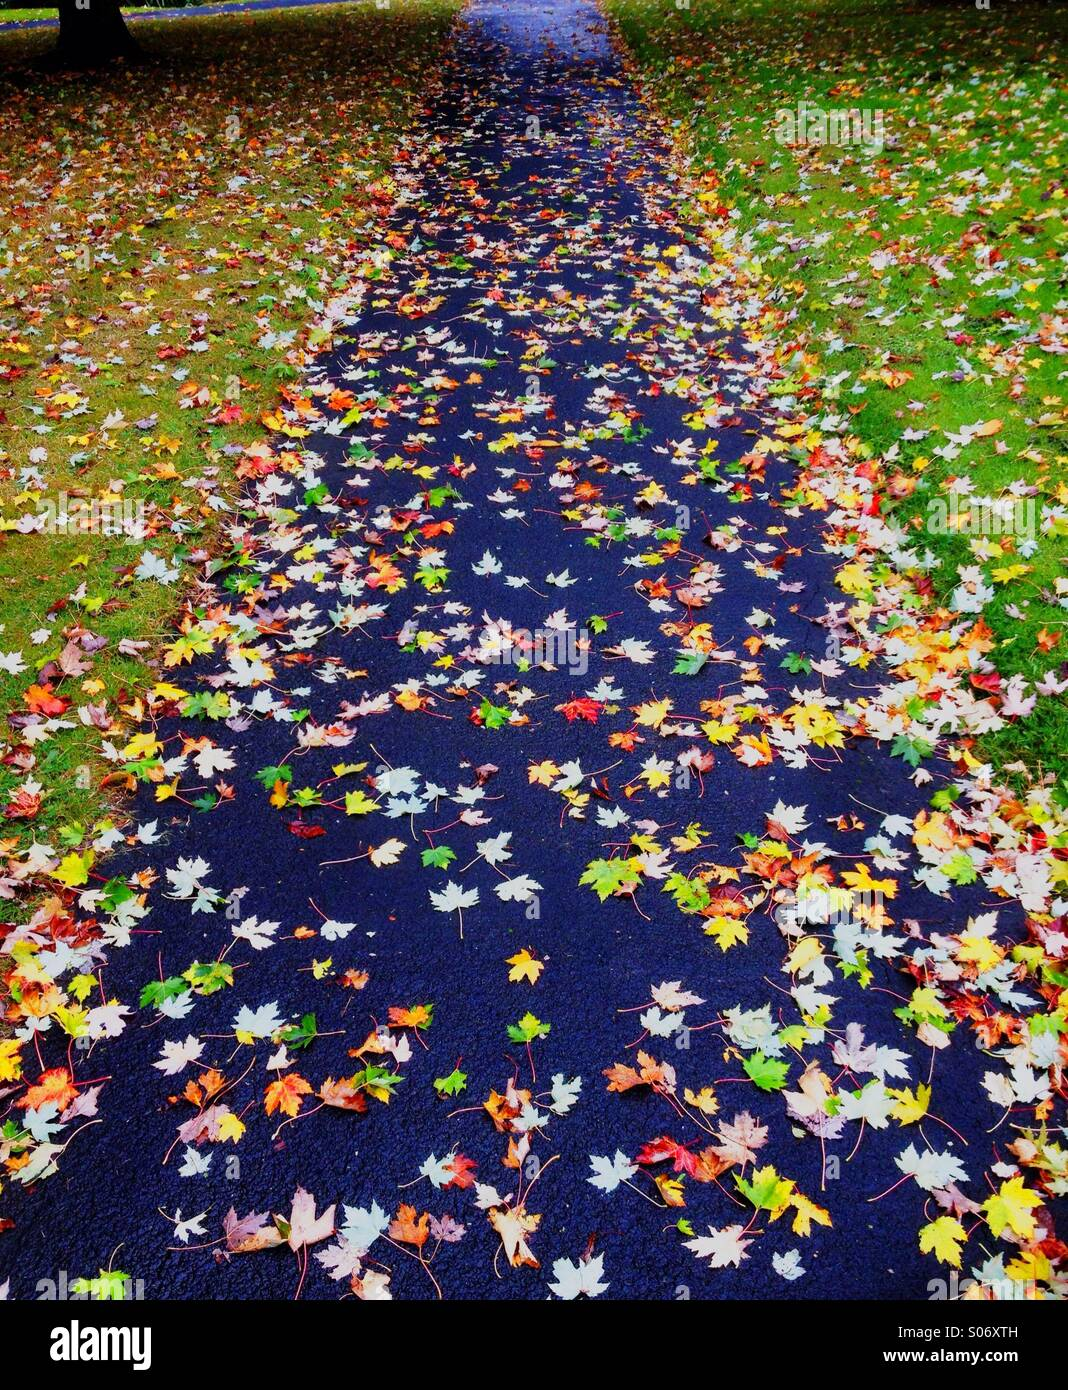 Fallen leaves cover a footpath after a shower of rain in Autumn - Stock Image